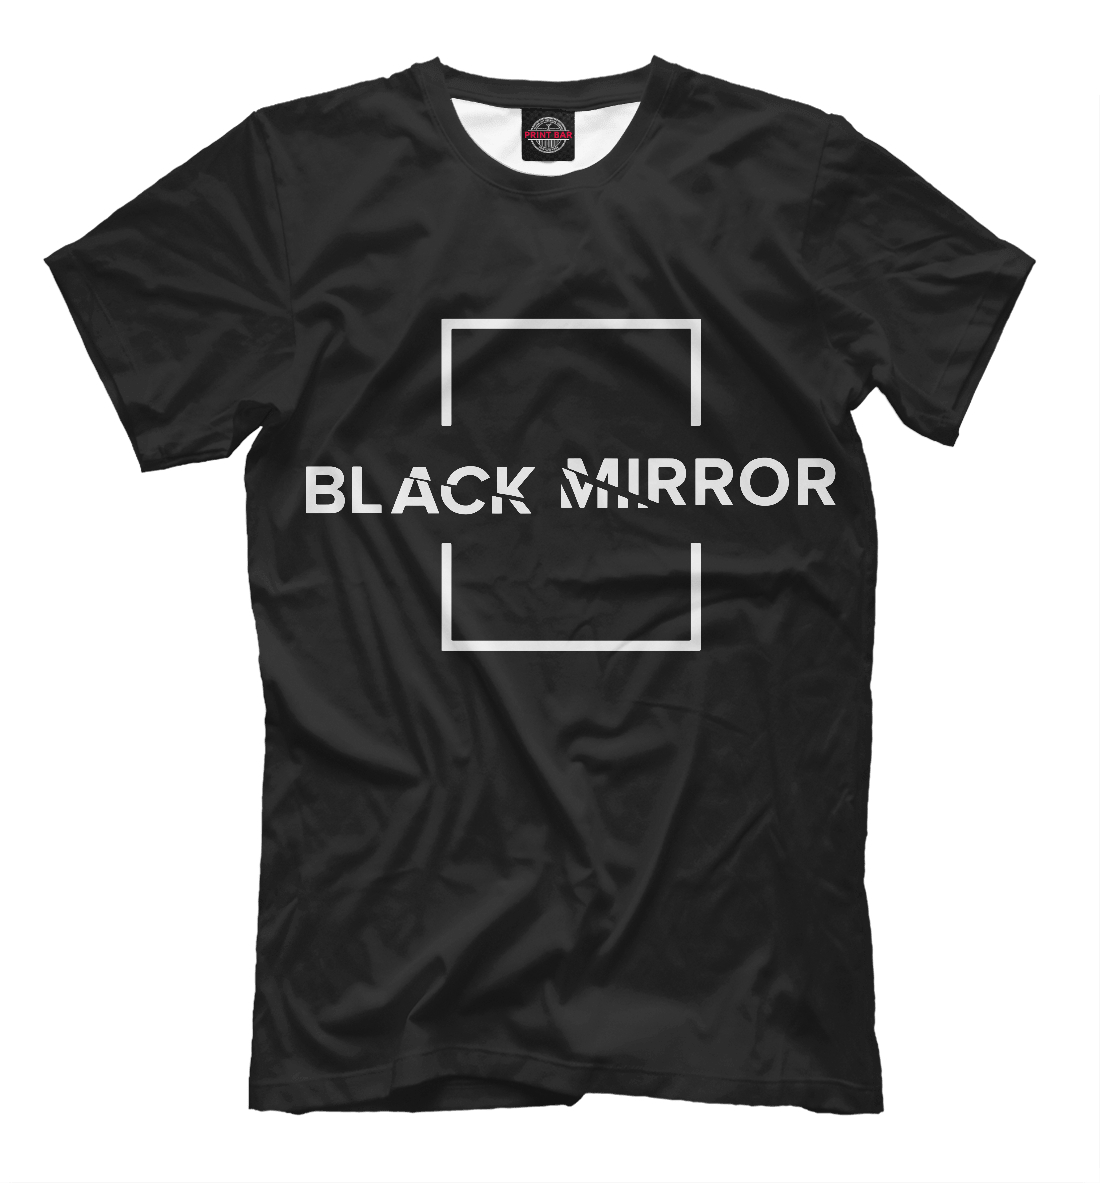 Купить Black Mirror, Printbar, Футболки, BLM-213621-fut-2